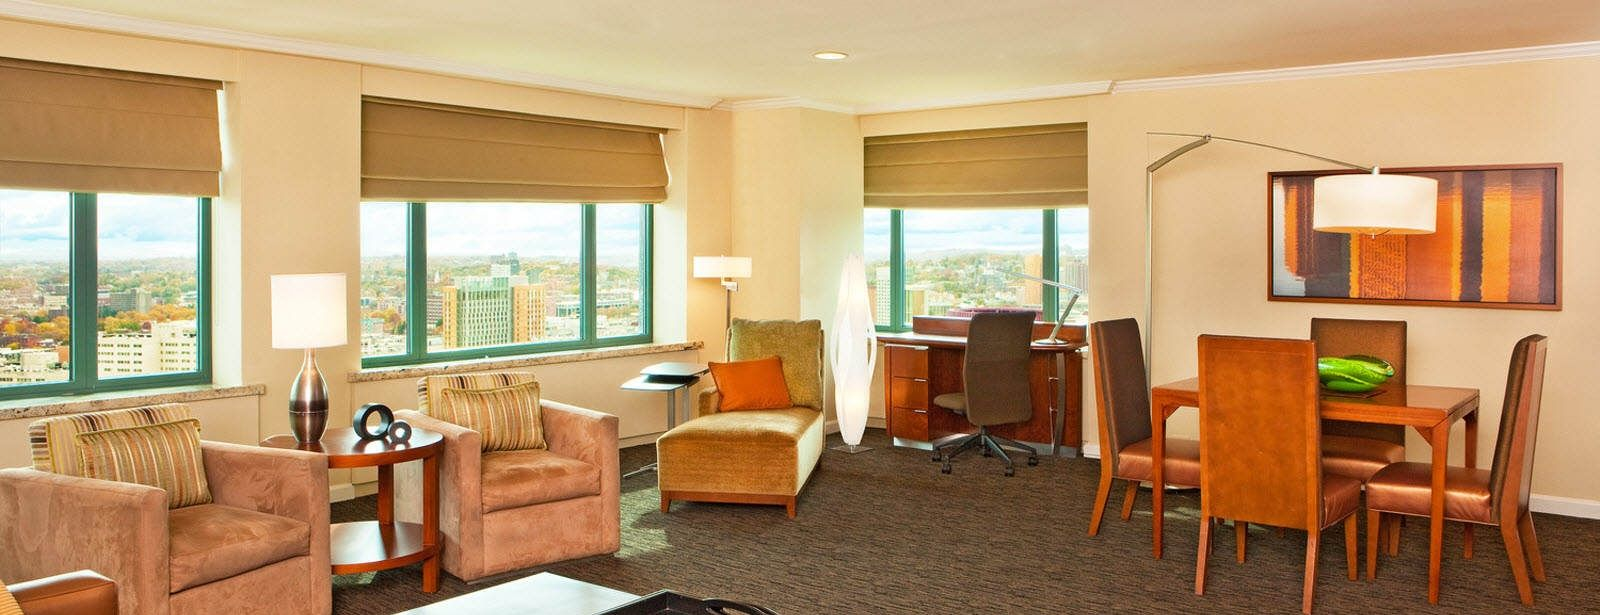 Sheraton Boston Hotel luxury suites lounge